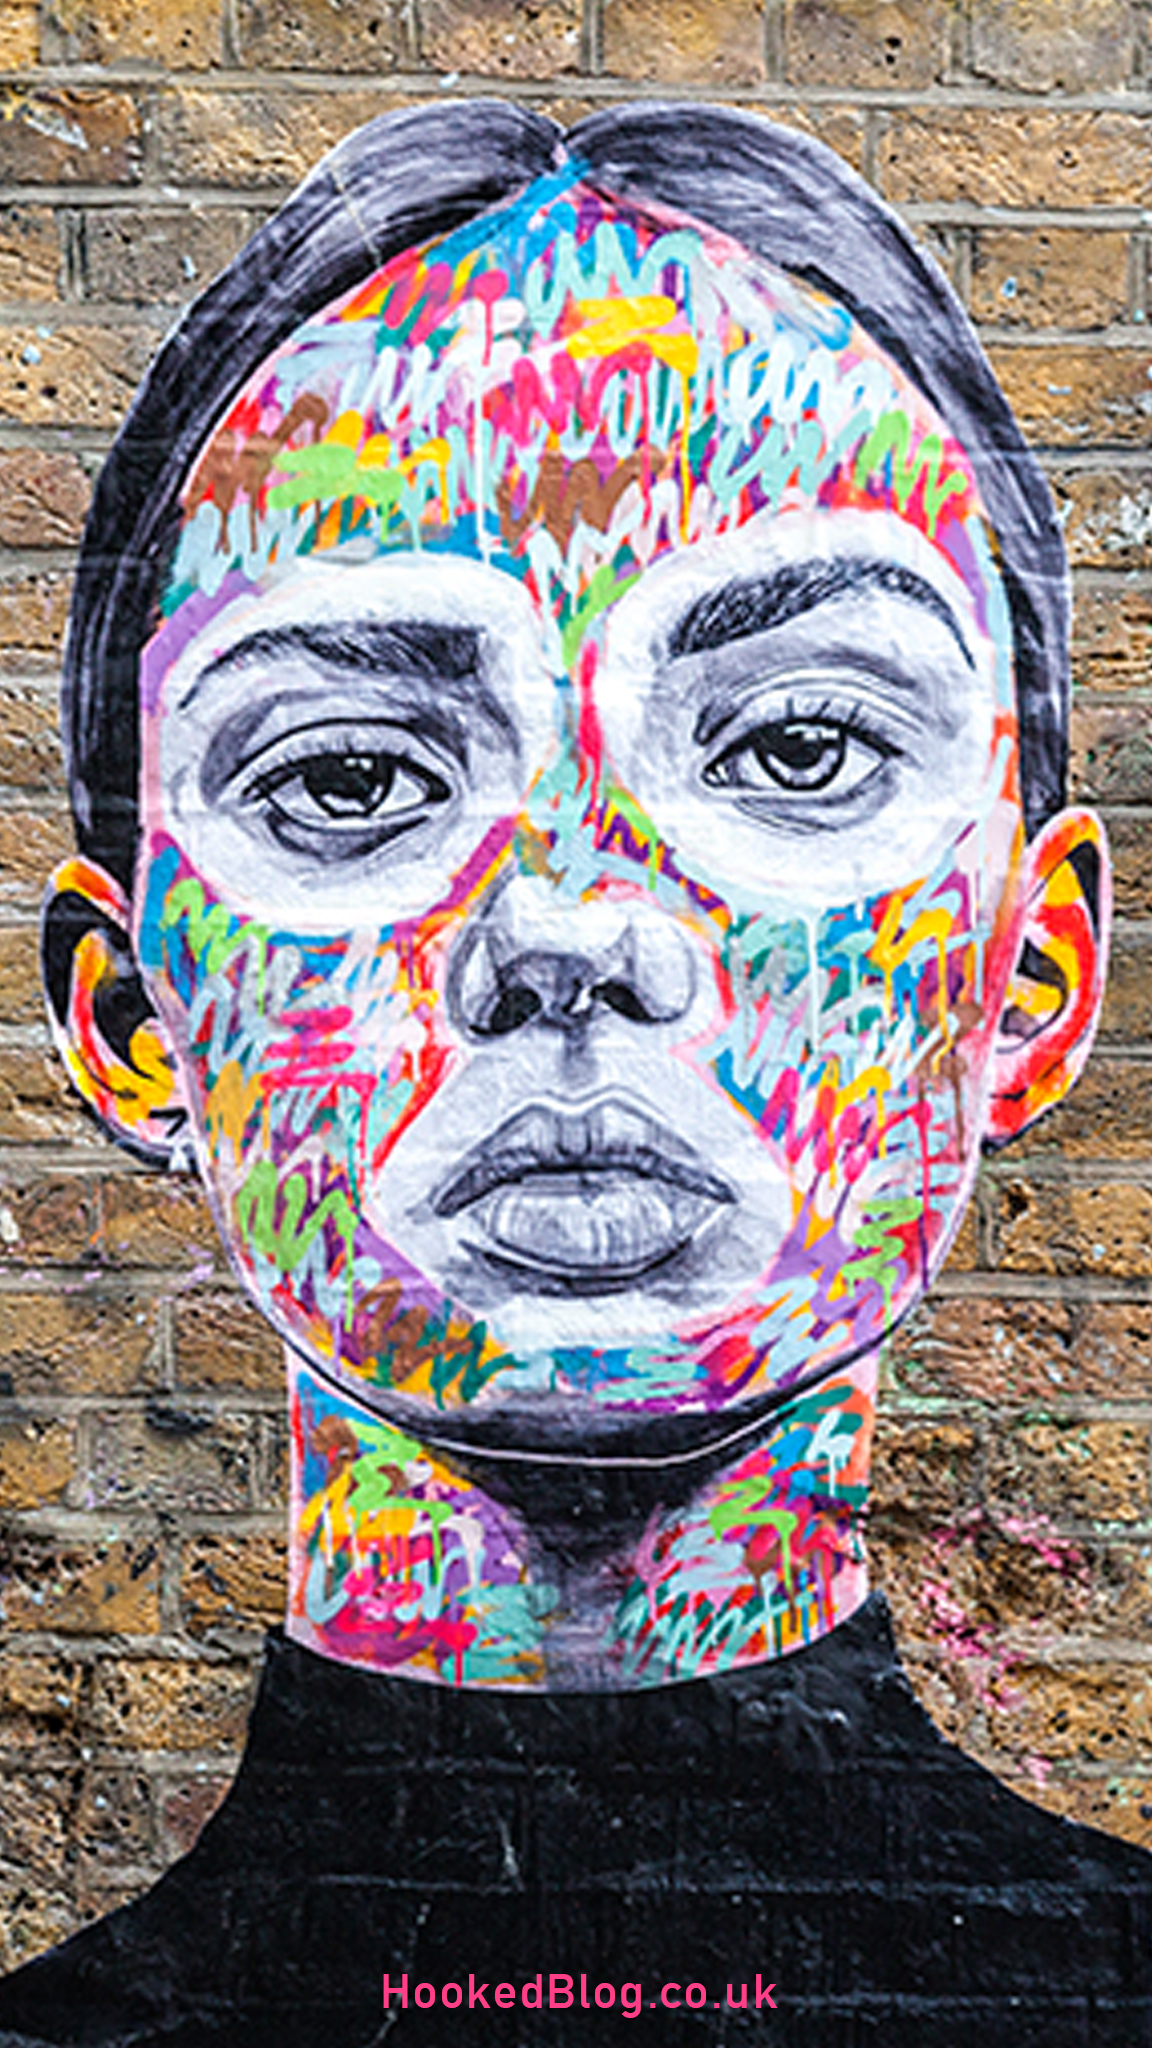 Eye-catching London Street Art by Ant Carver in Brick Lane, London. #streetart #portraits #London